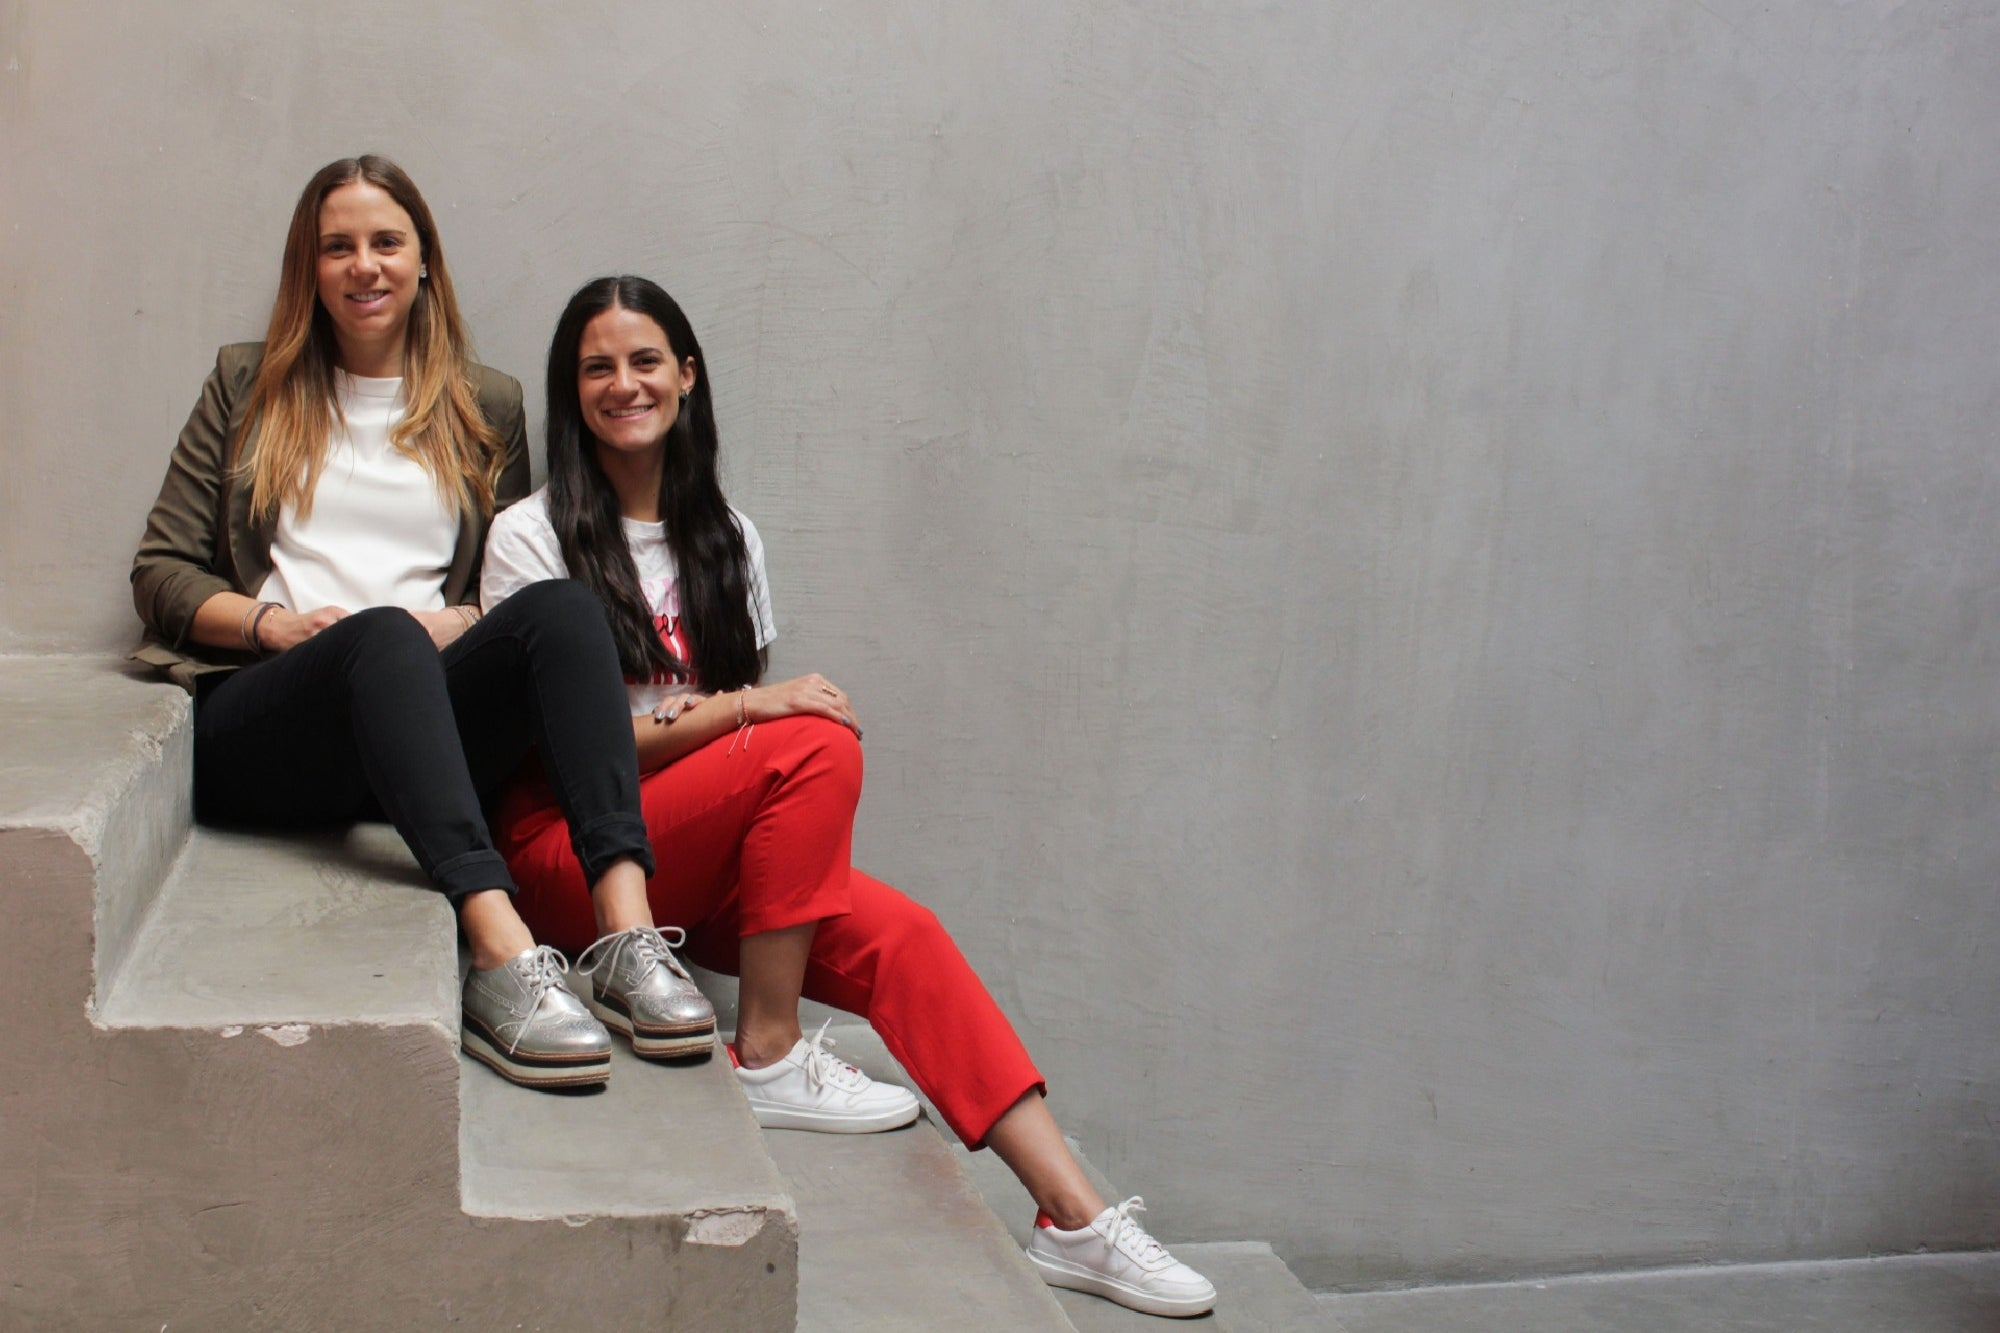 The sisters who created their own corporate gift company collaborating with Mexican artisans